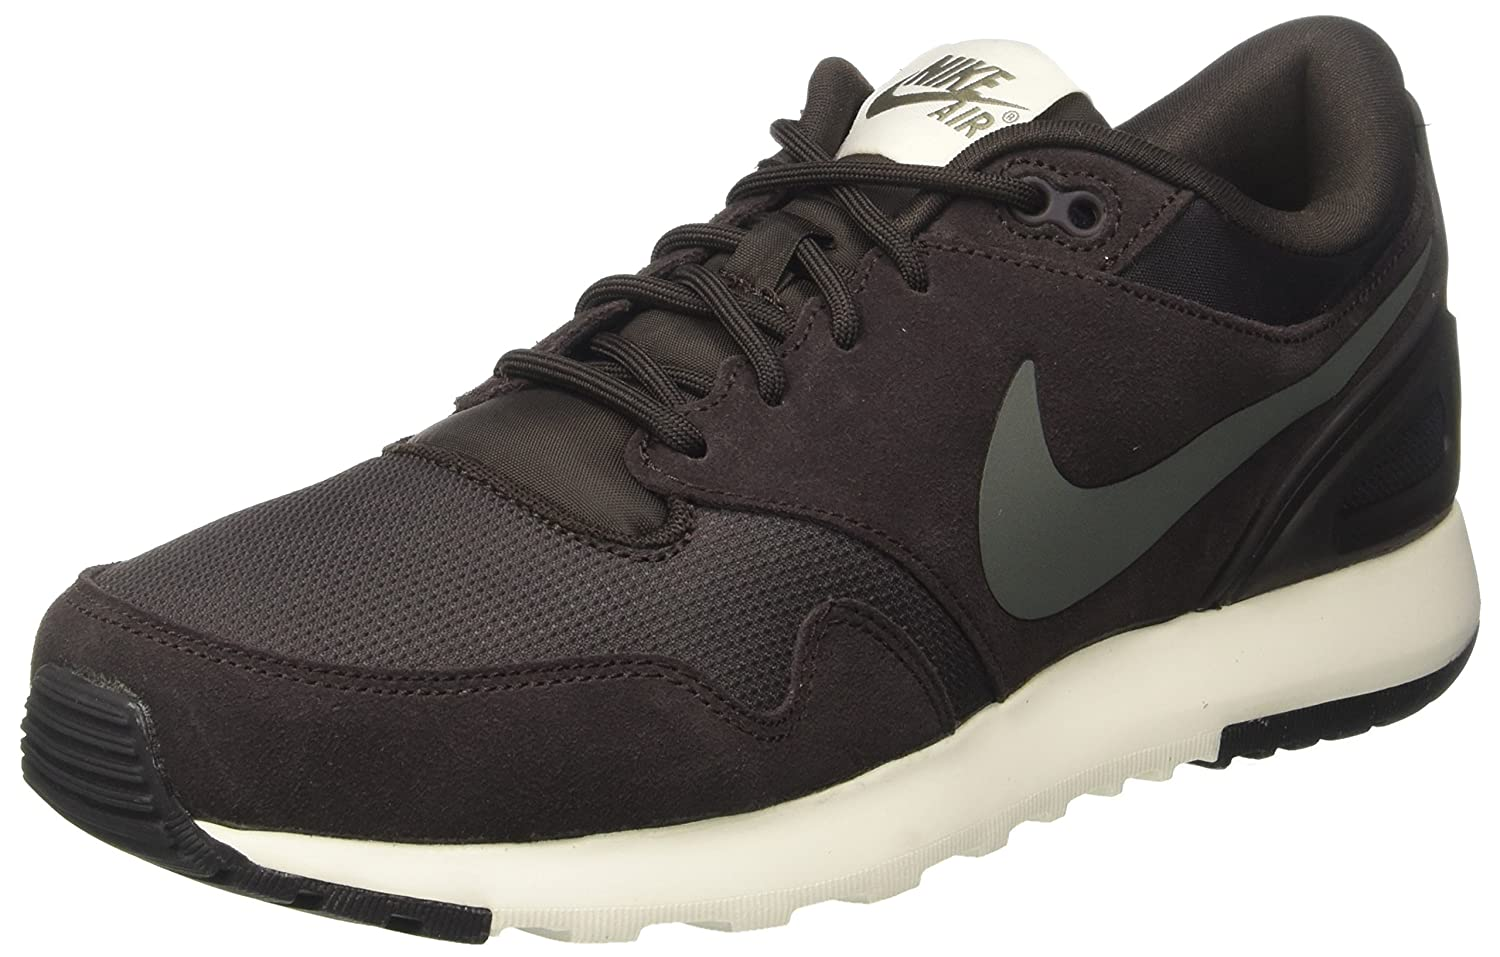 Nike Herren Air Vibenna Gymnastikschuhe, Black/Anthracite-Sail, Eu  425 EU|Braun (Velvet Brown/River Rock/Bright Cactus)